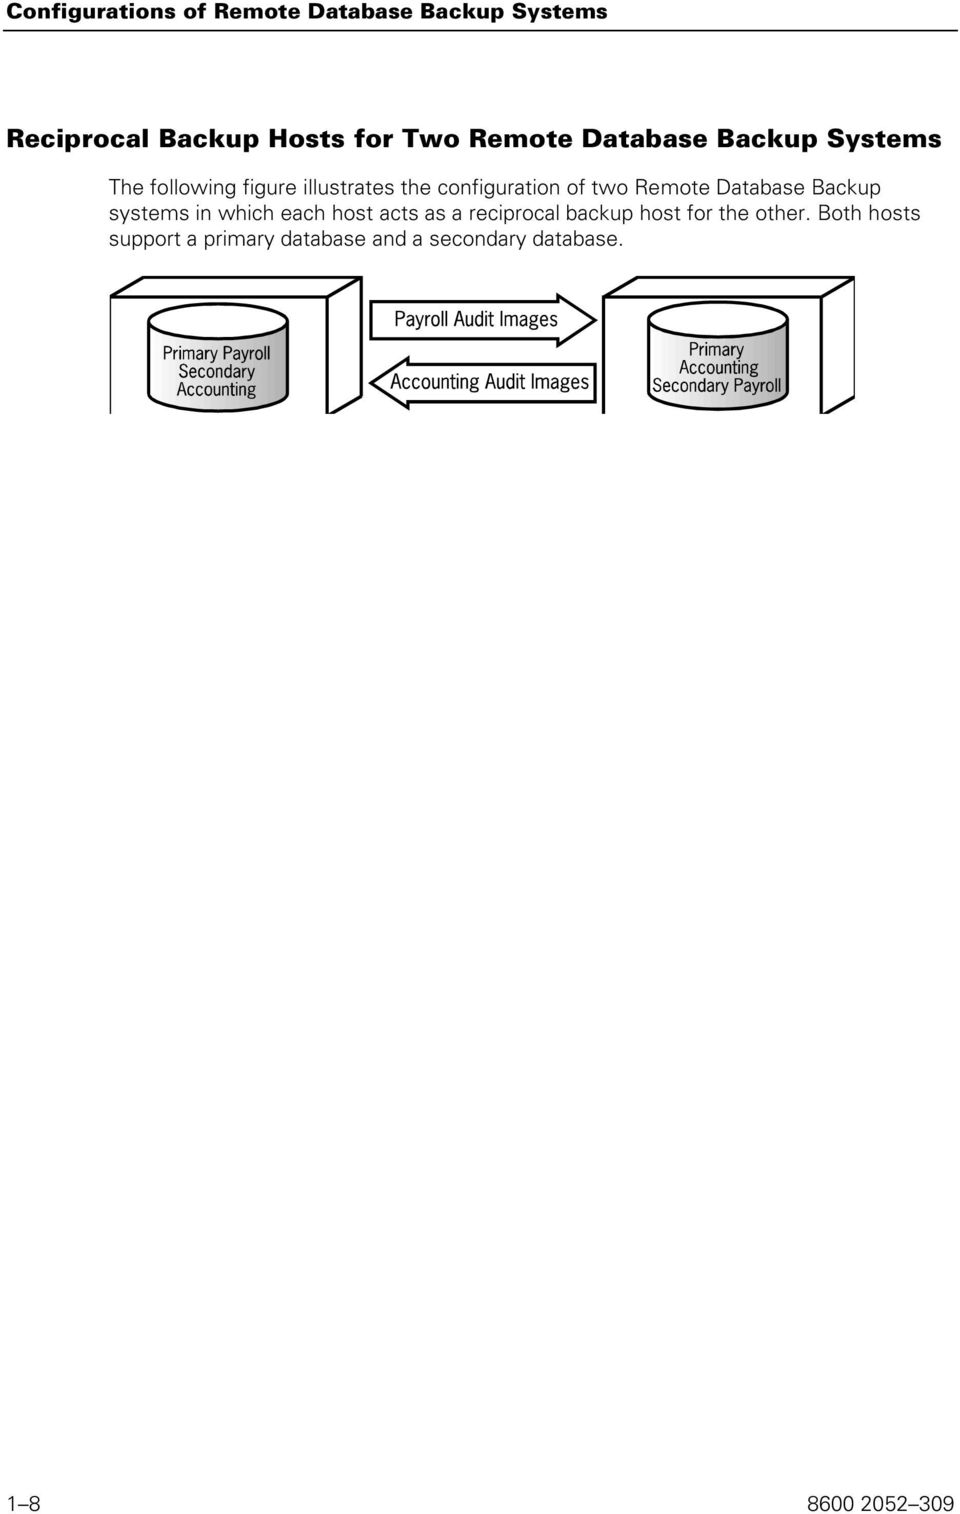 Remote Database Backup systems in which each host acts as a reciprocal backup host for